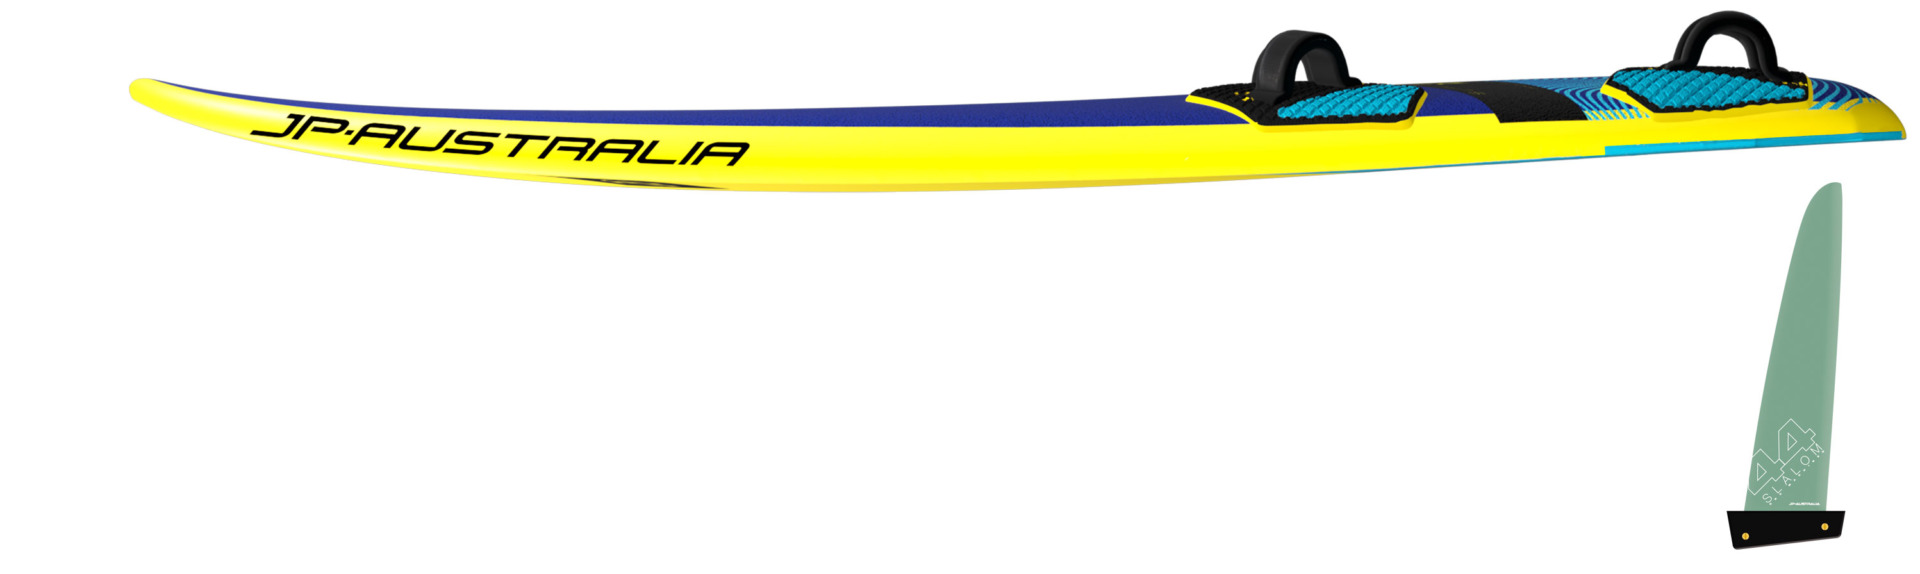 JP Australia SuperSport LXT 2021 rail